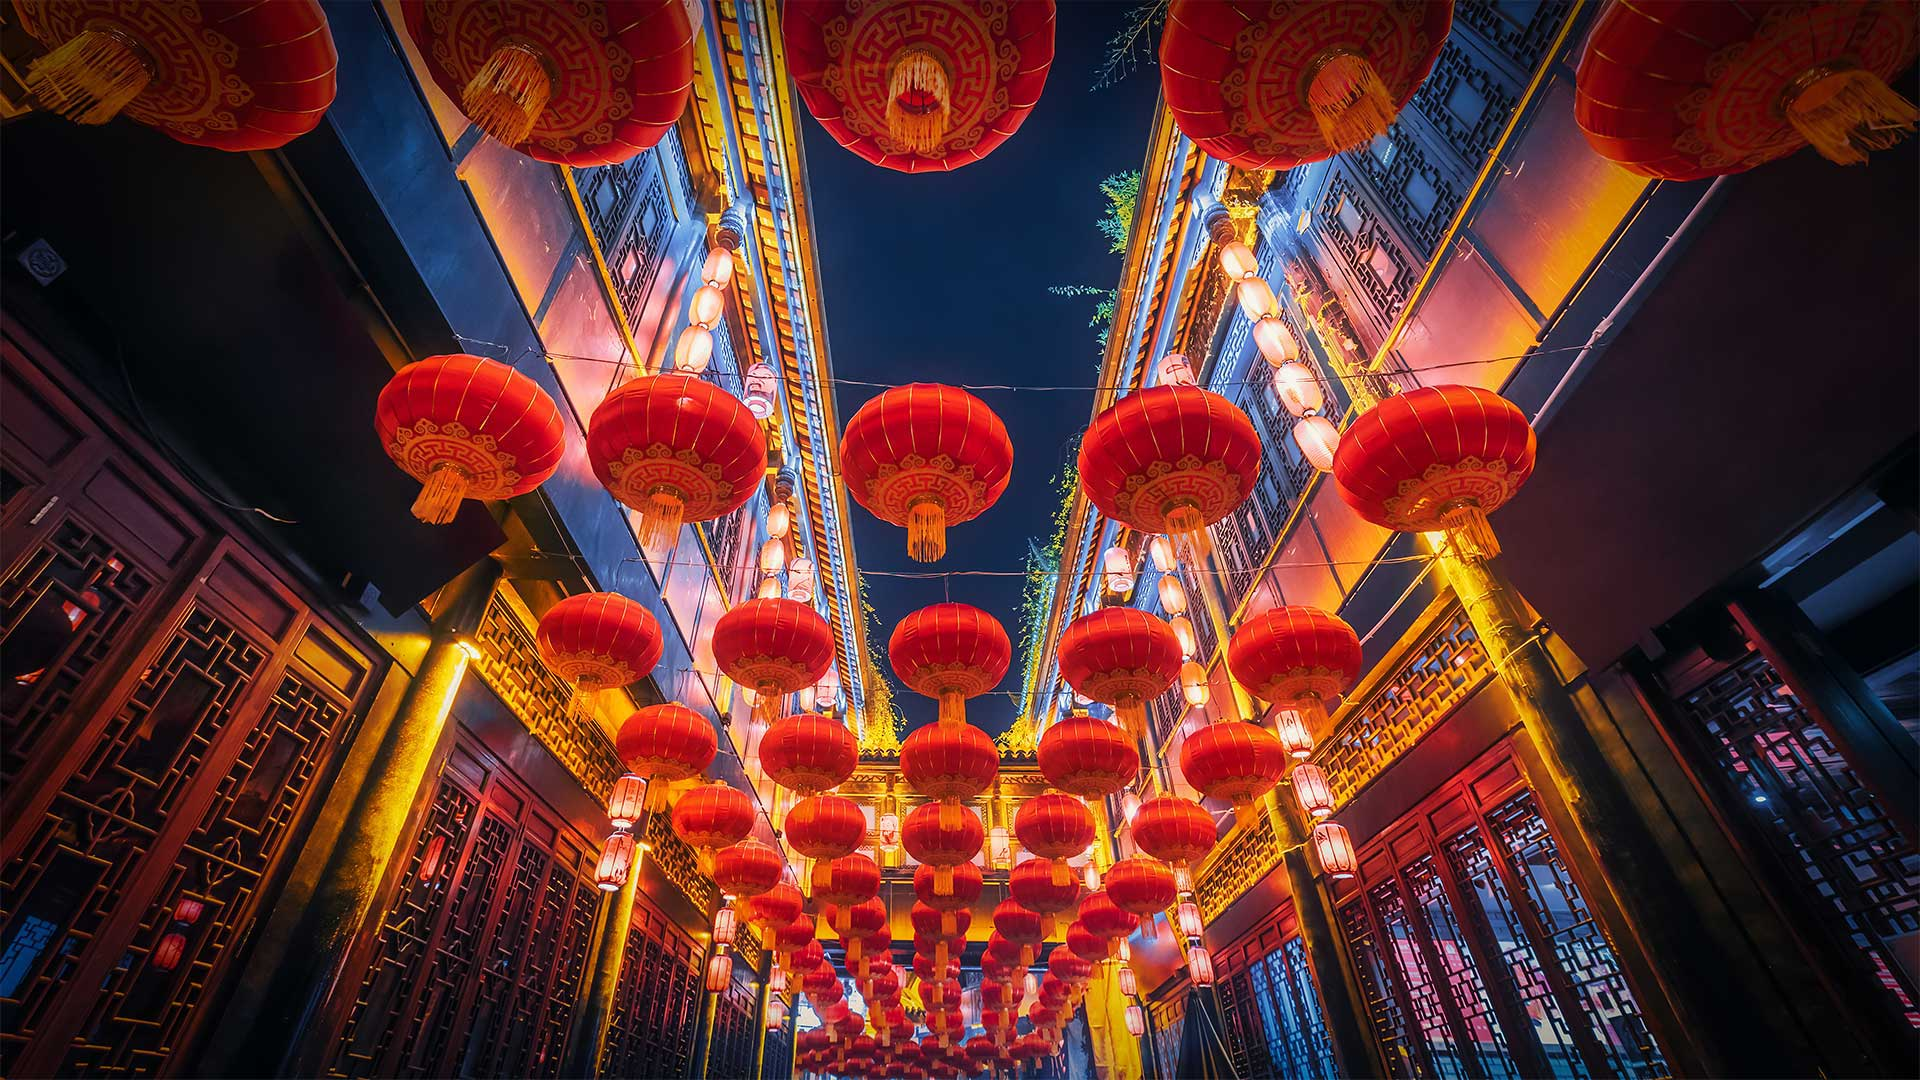 Red lanterns hanging in Jinli Street, Chengdu, China (© Philippe LEJEANVRE/Getty Images)(Bing United States)